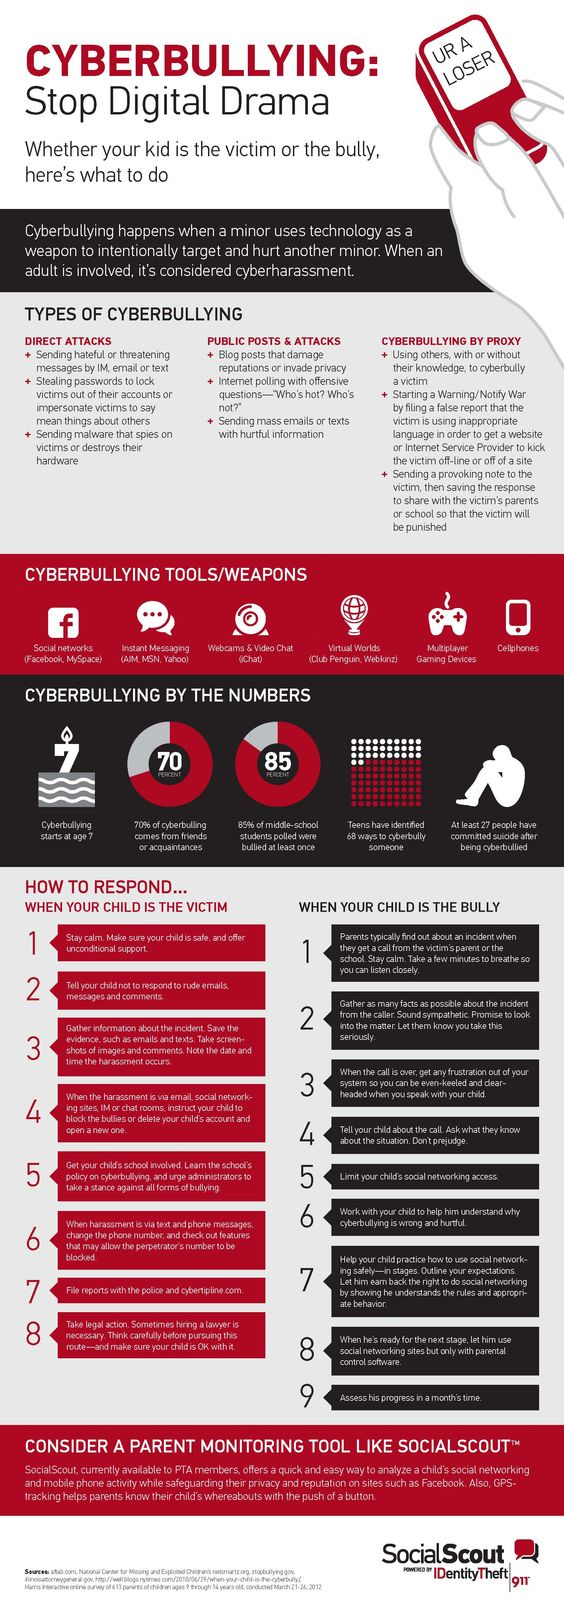 October is National Bullying Prevention Month. A lot of good people are raising awareness about this important issue. To support the efforts of parents, teachers and children across the country, we created the cyberbullying response plan below. Learn more about what cyberbullying is, how to protect your child from bullies, and how to respond.: